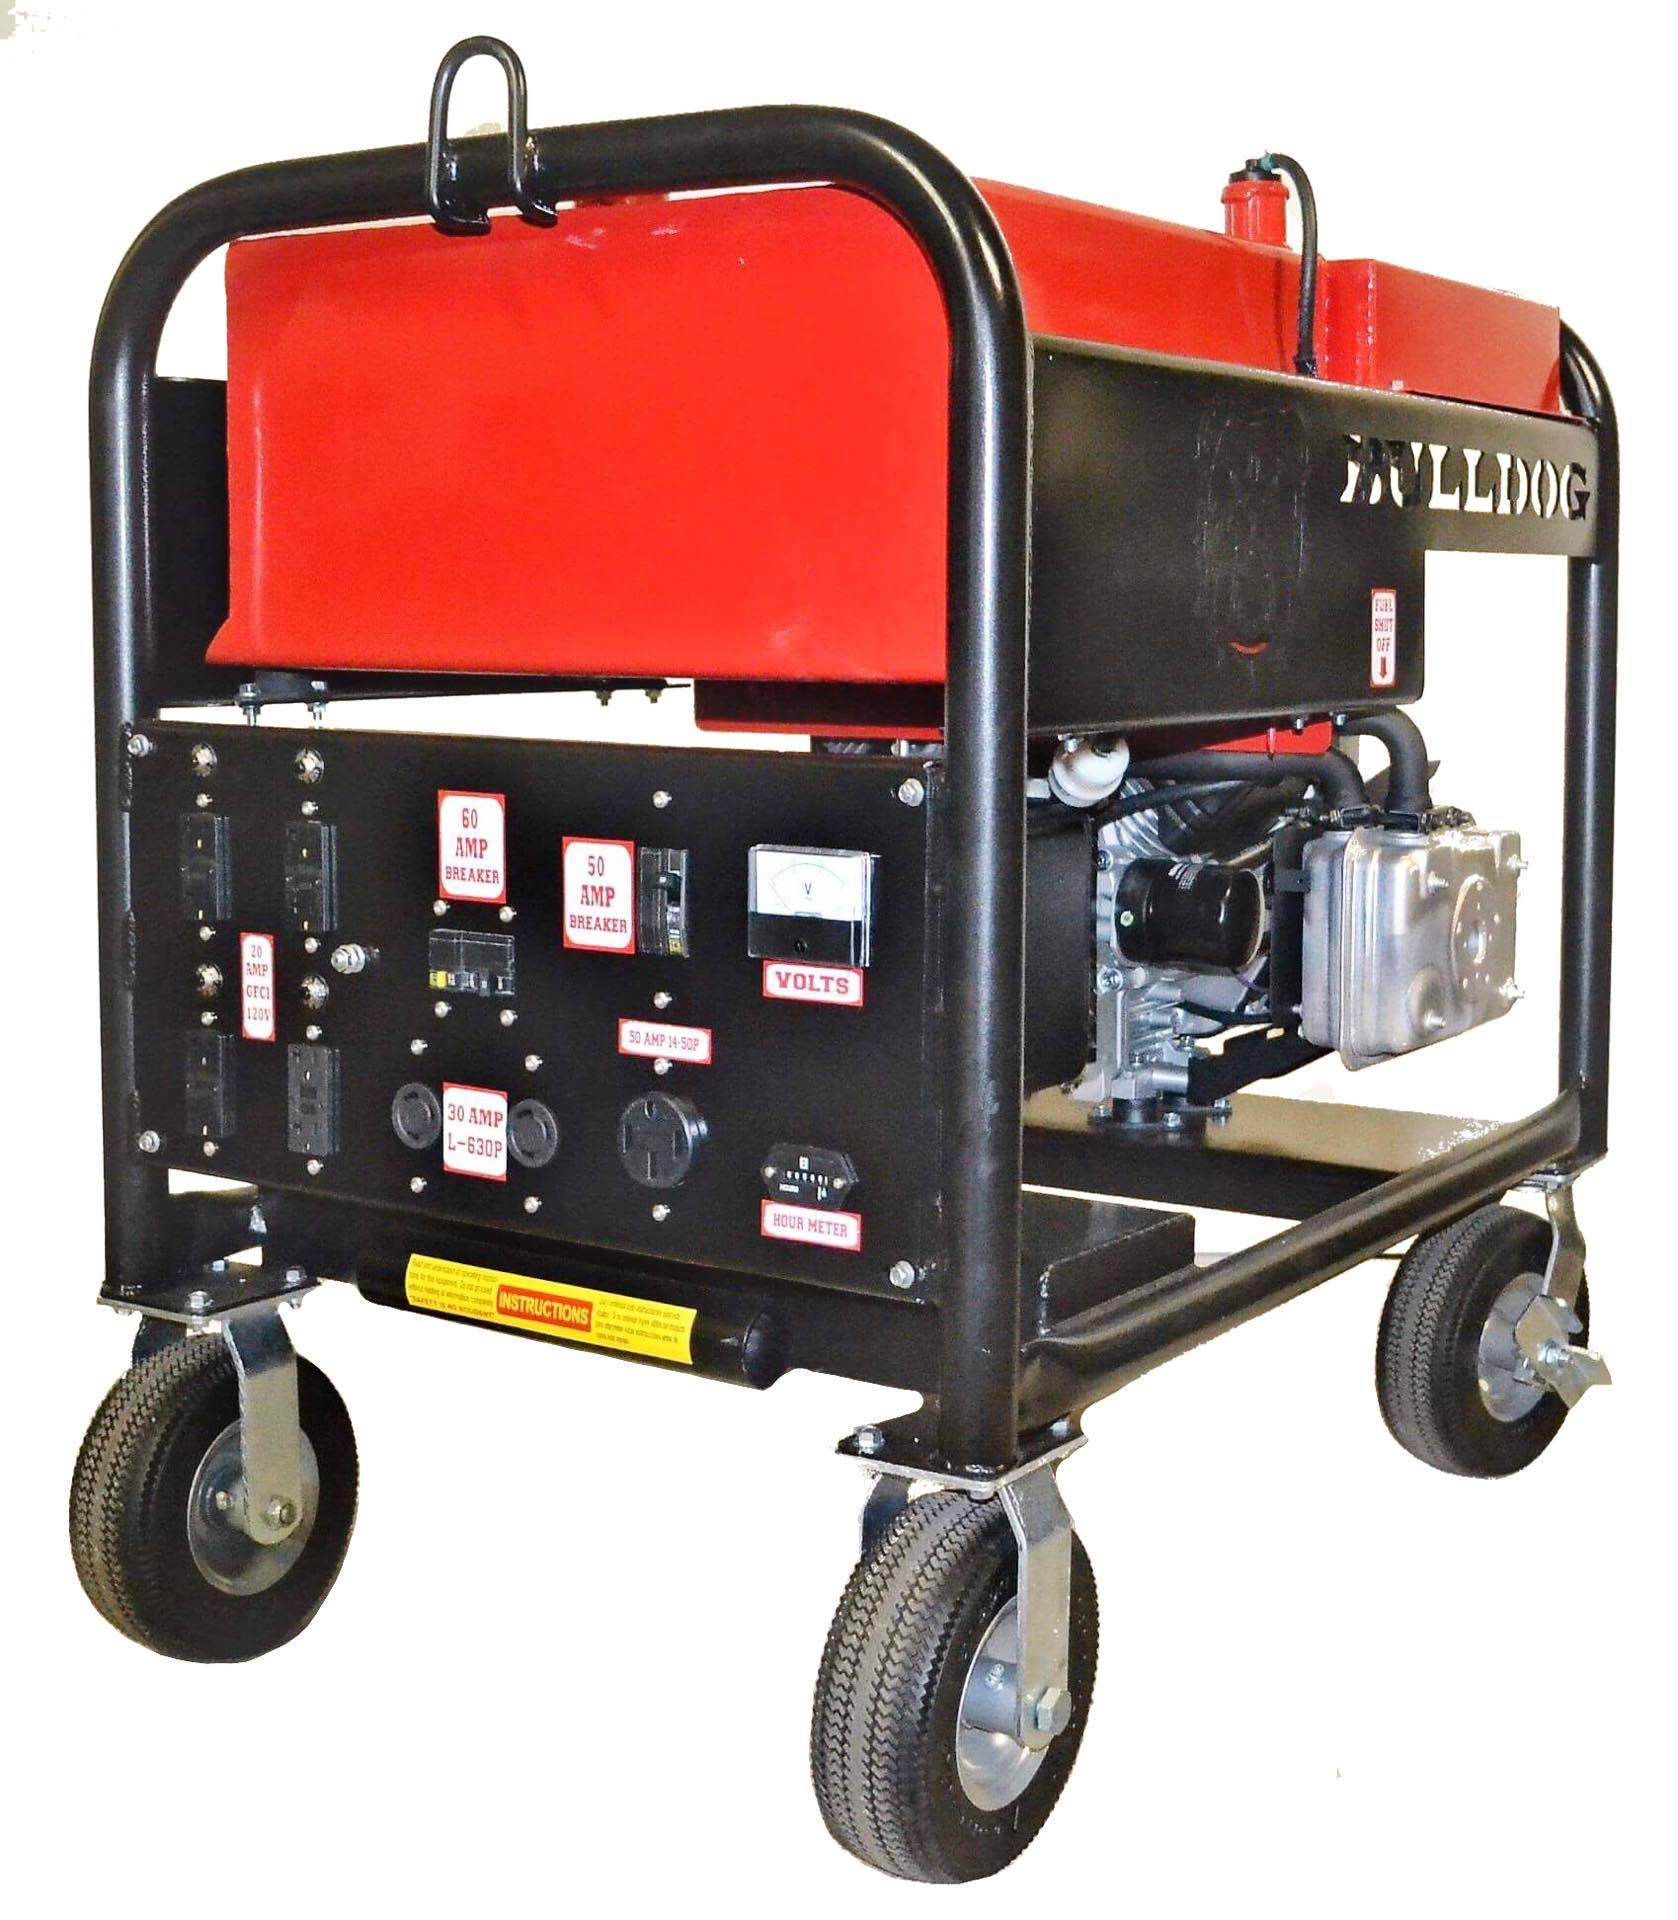 BULLDOG 16 000 Watts – GATOR GENERATORS